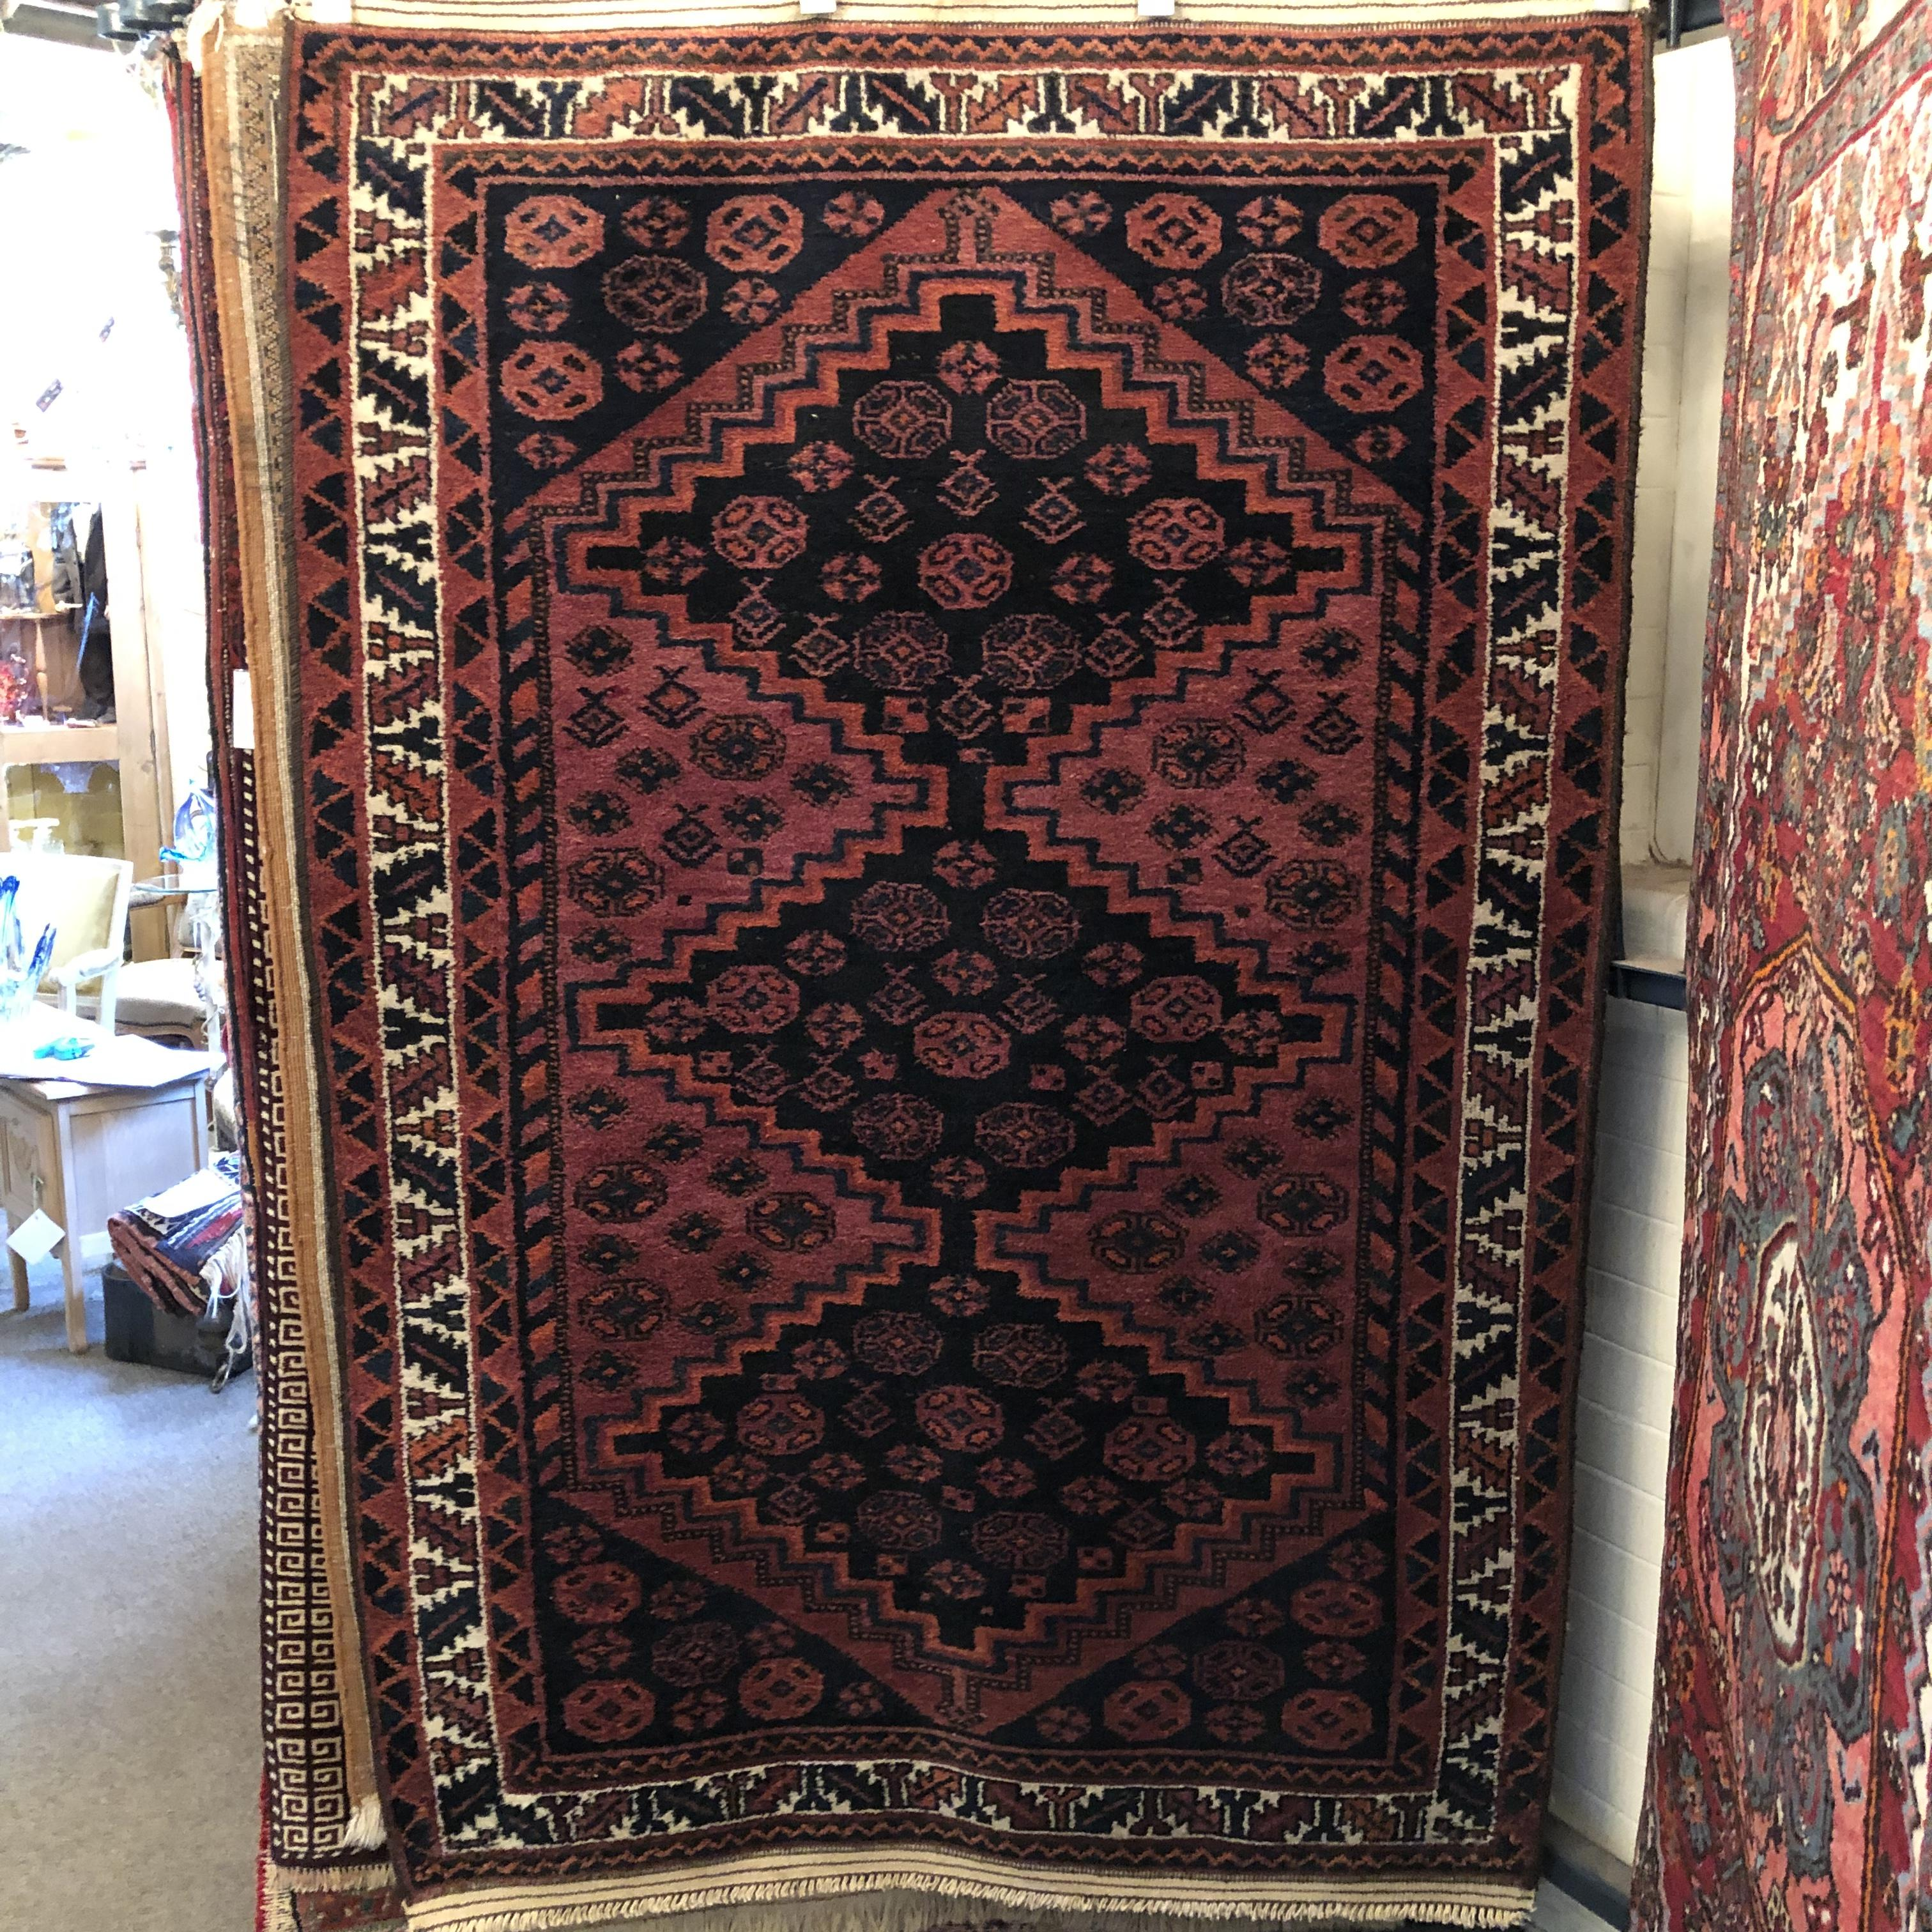 Antique Afghan Rugs: Rugs Tapestries & Textiles